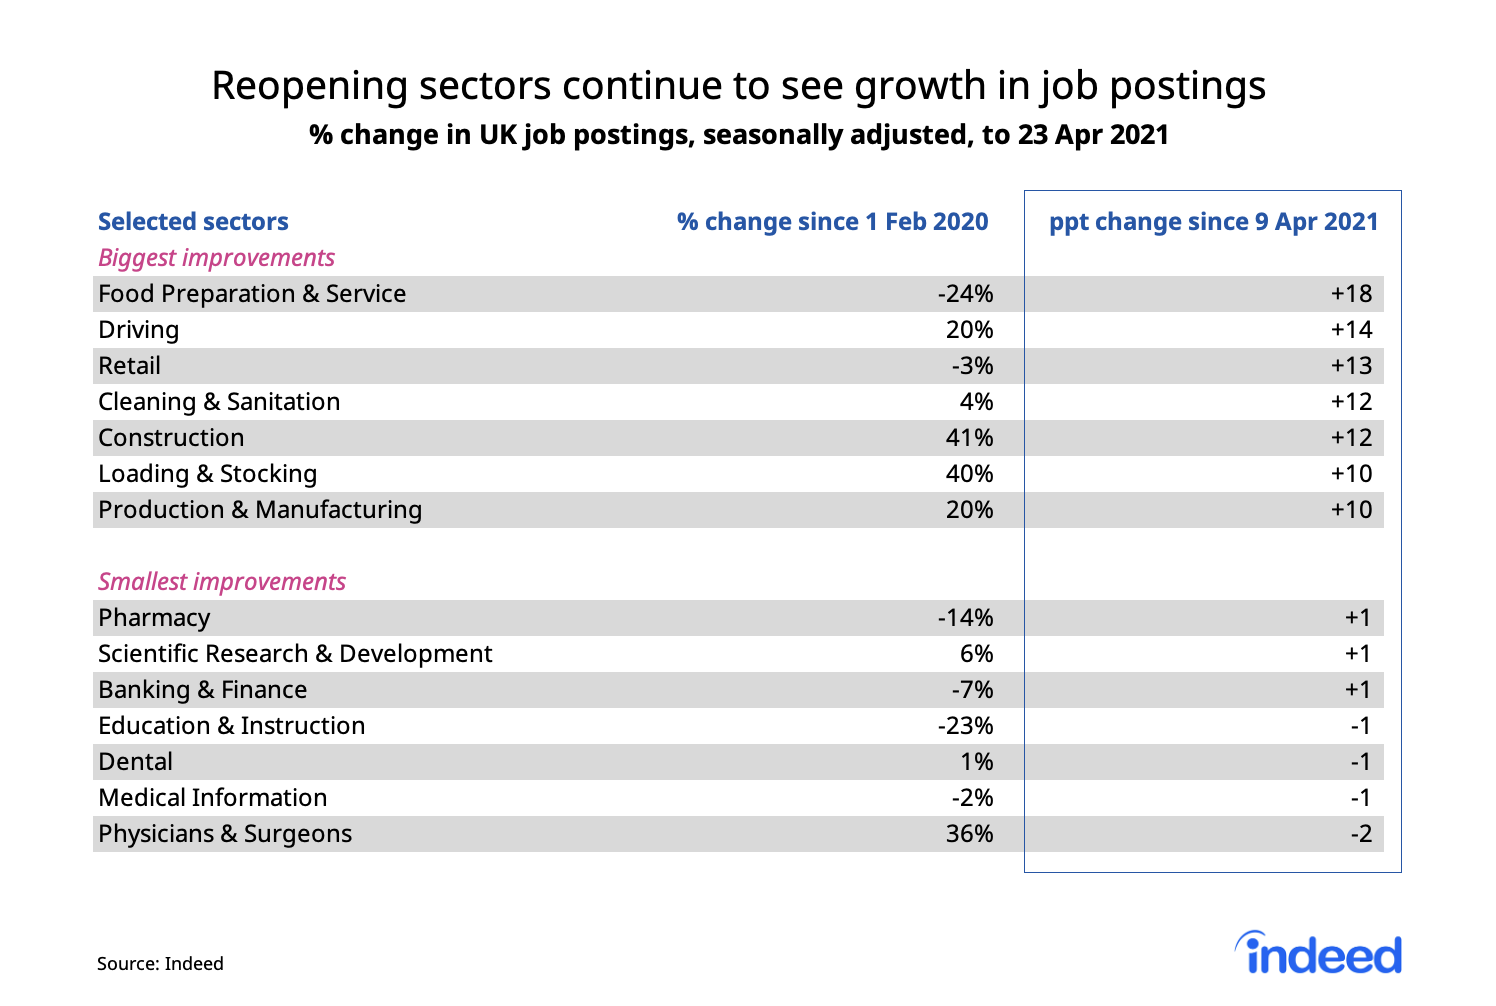 Table showing reopening sectors continue to see growth in job postings